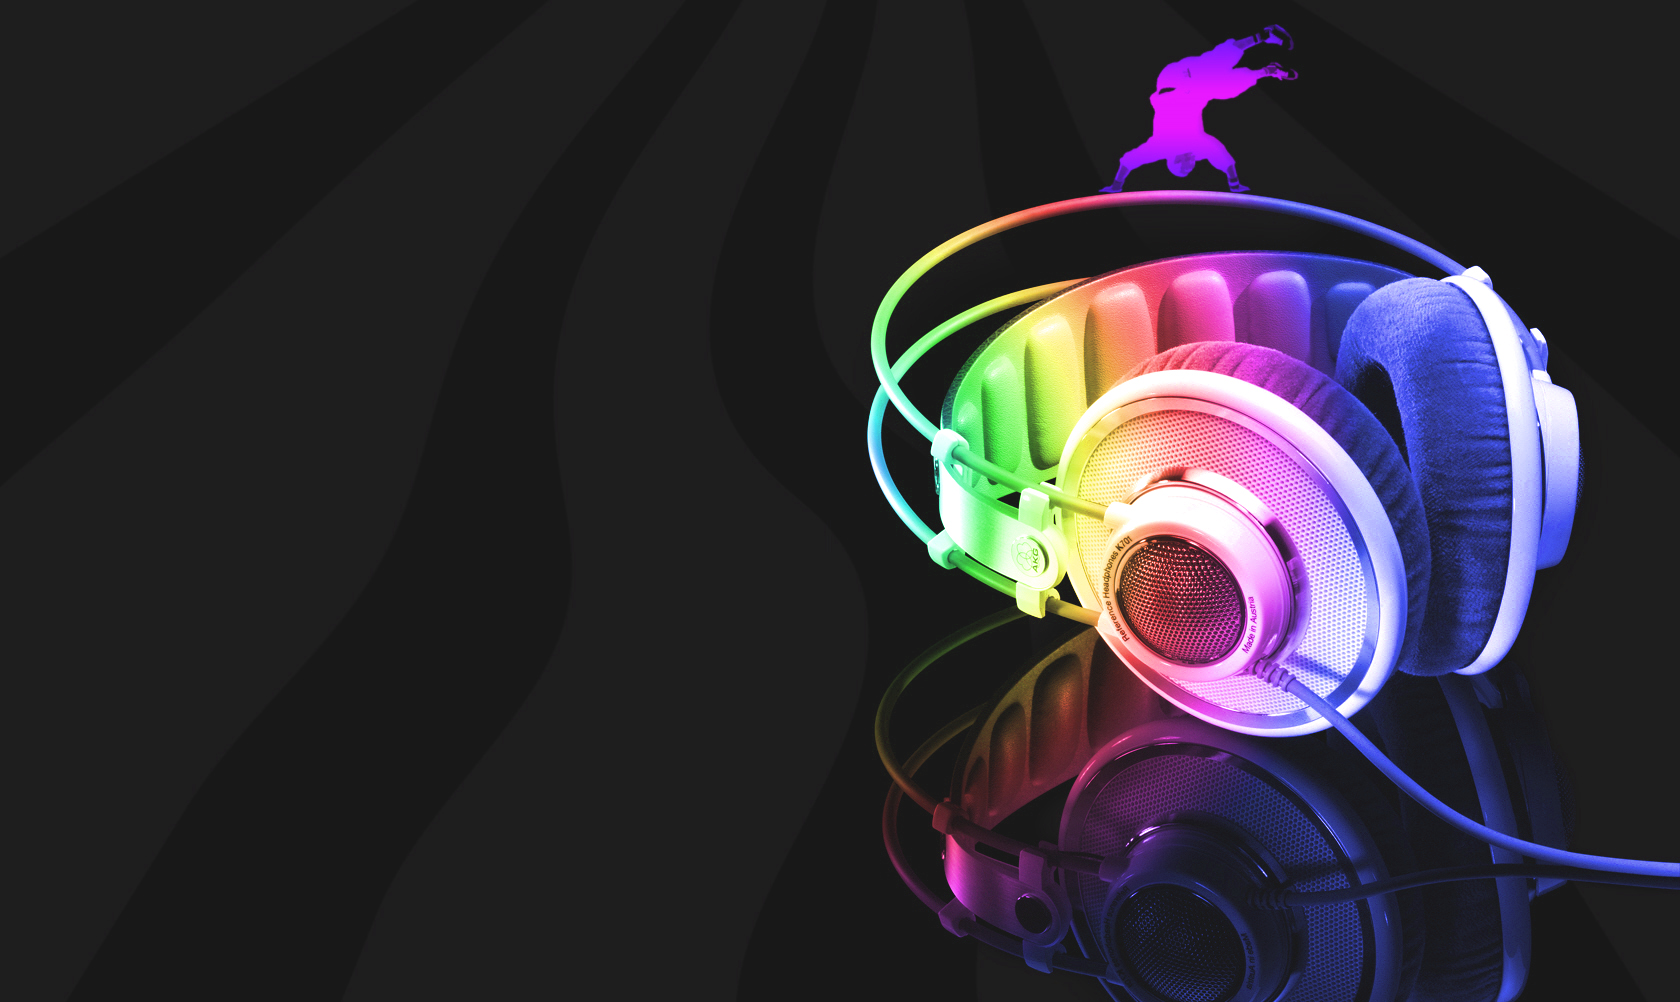 Cool Music Background Hd 919138 Hd Wallpaper Backgrounds Download